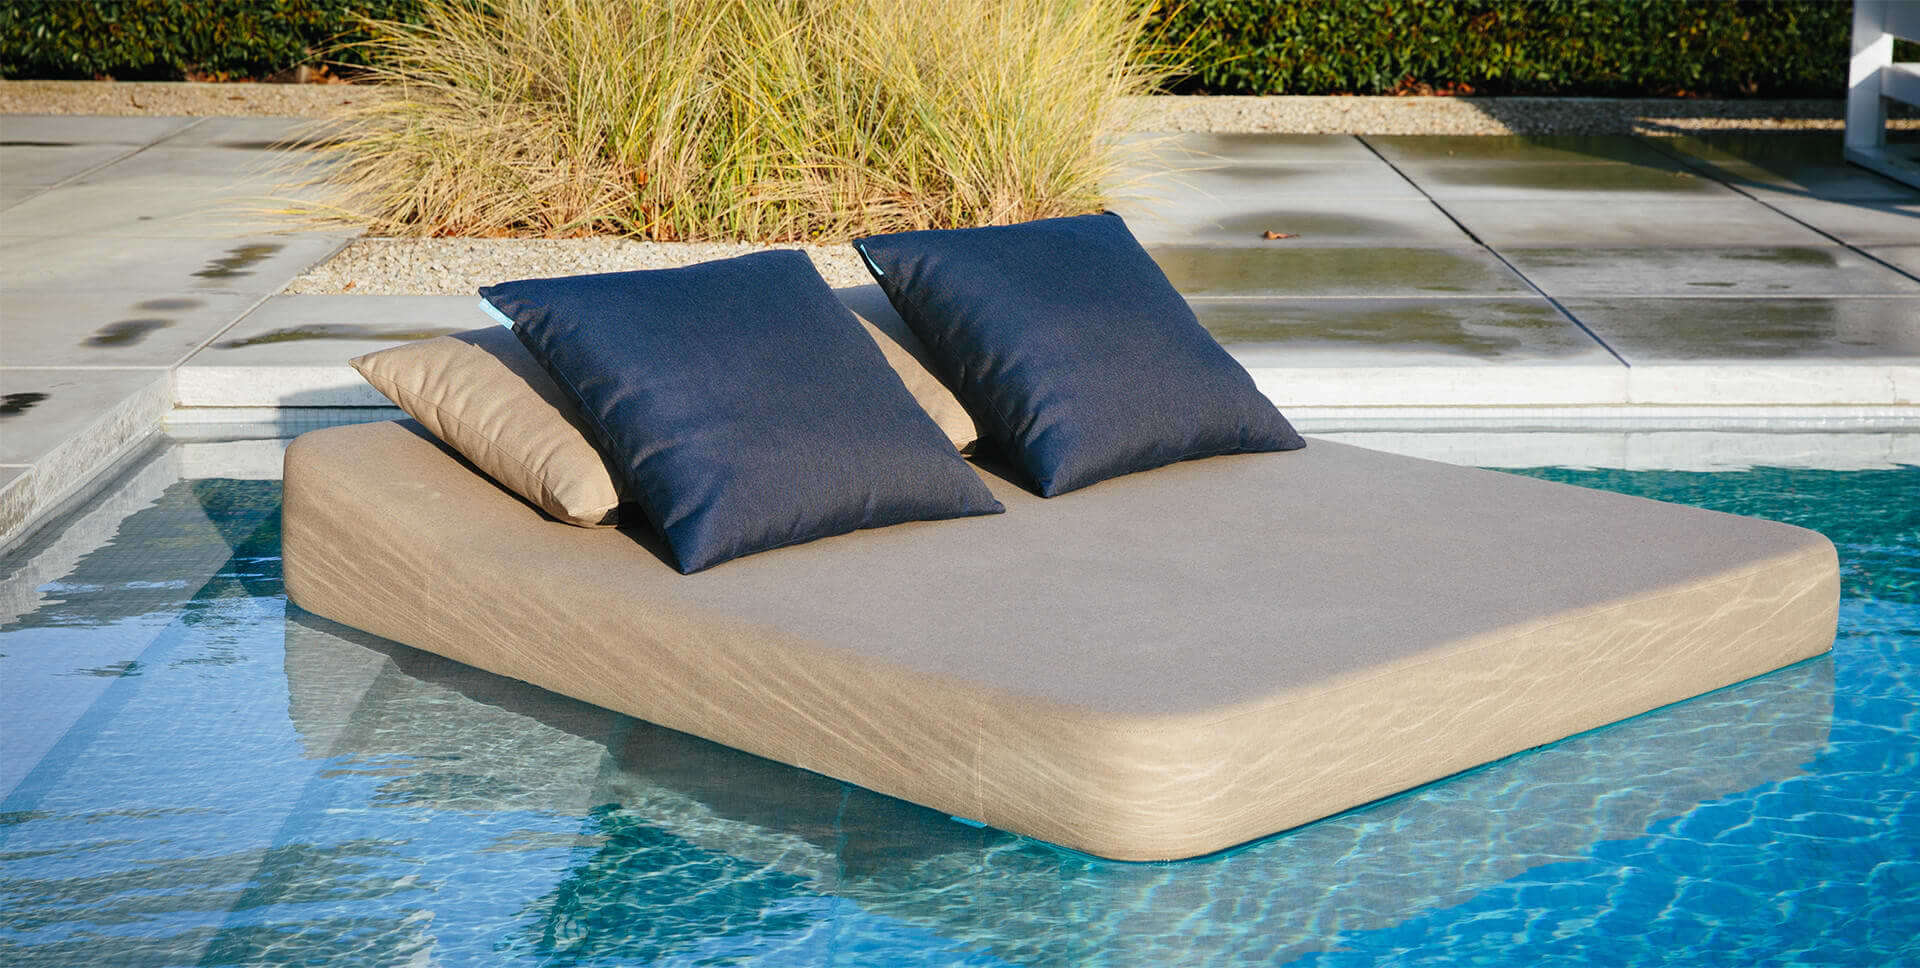 luxury floating lounger by Mr Blue Sky